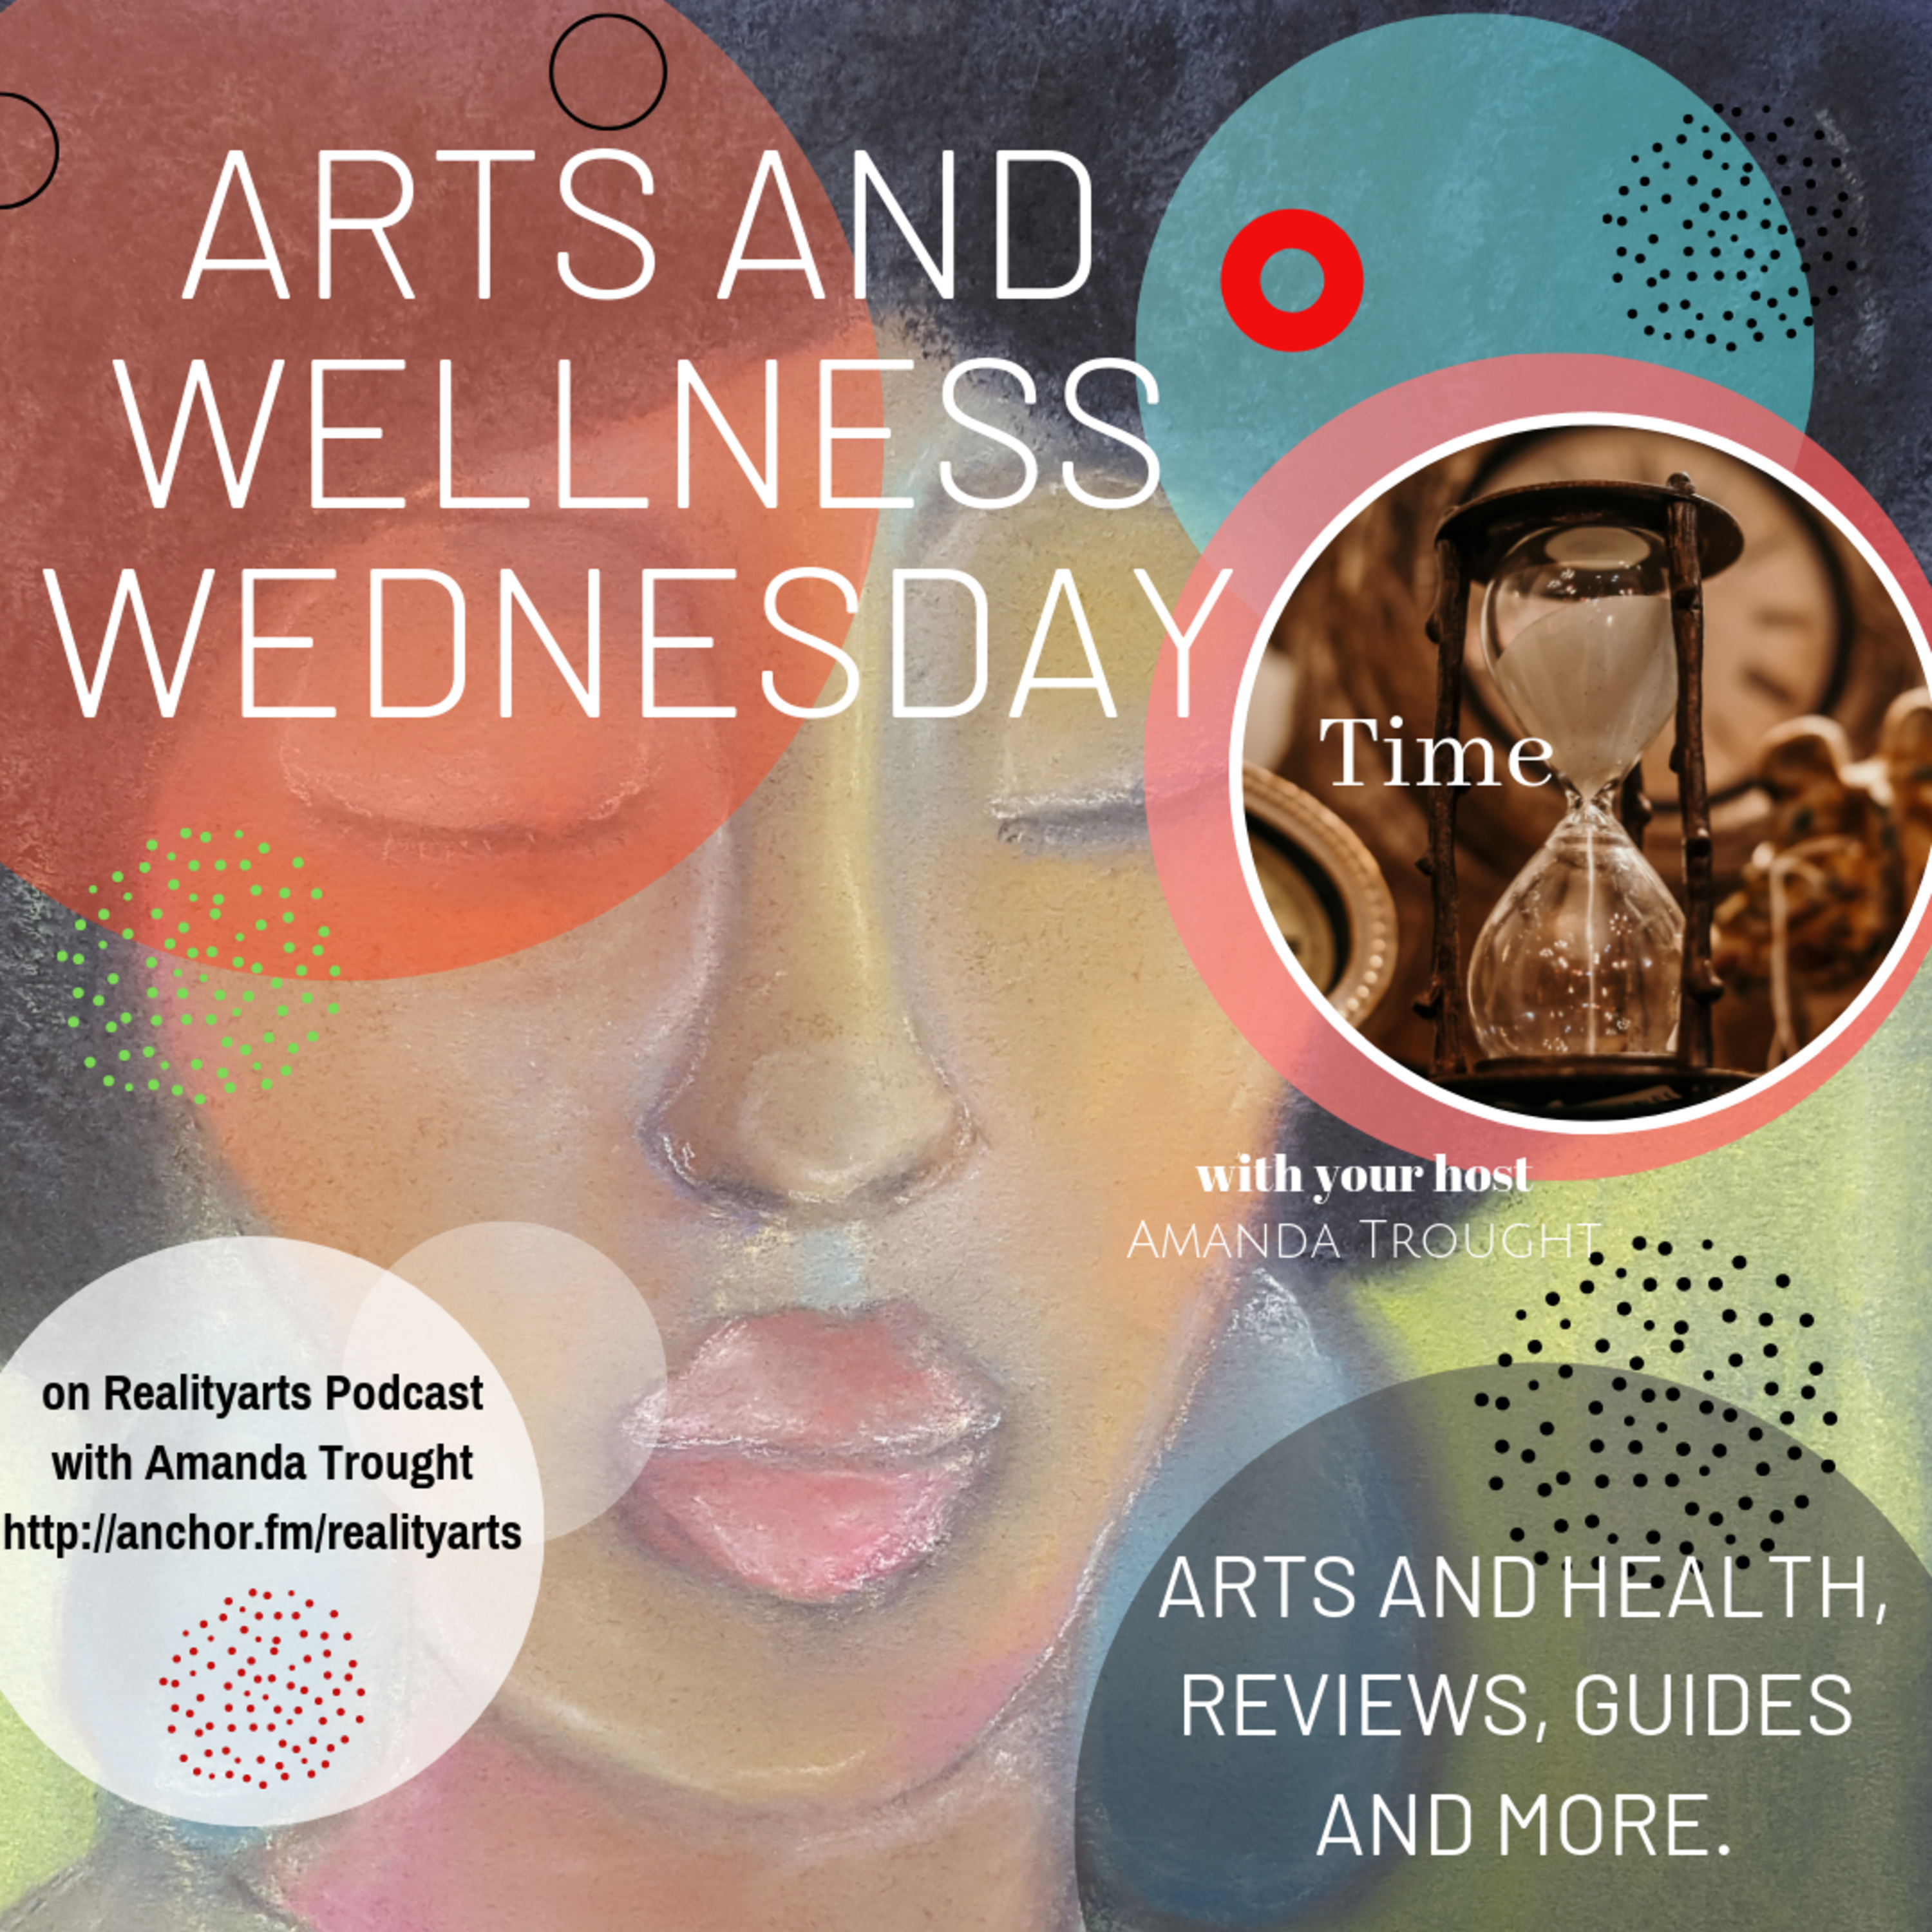 Arts and Wellness Wednesday - Making Time For you